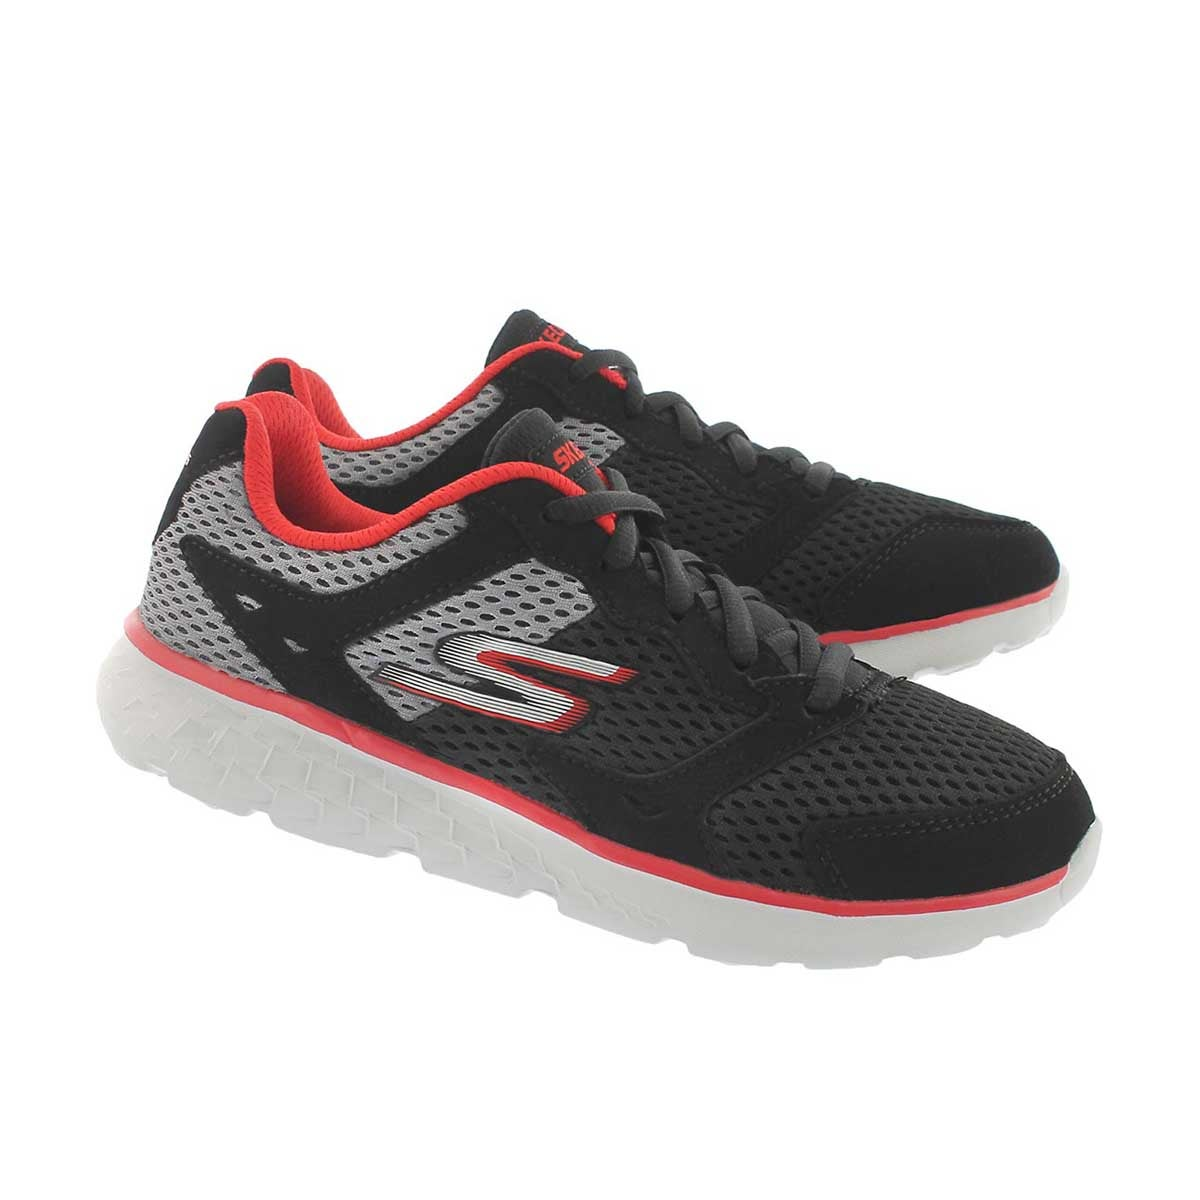 Bys GOrun 400 blk/red lace up sneaker